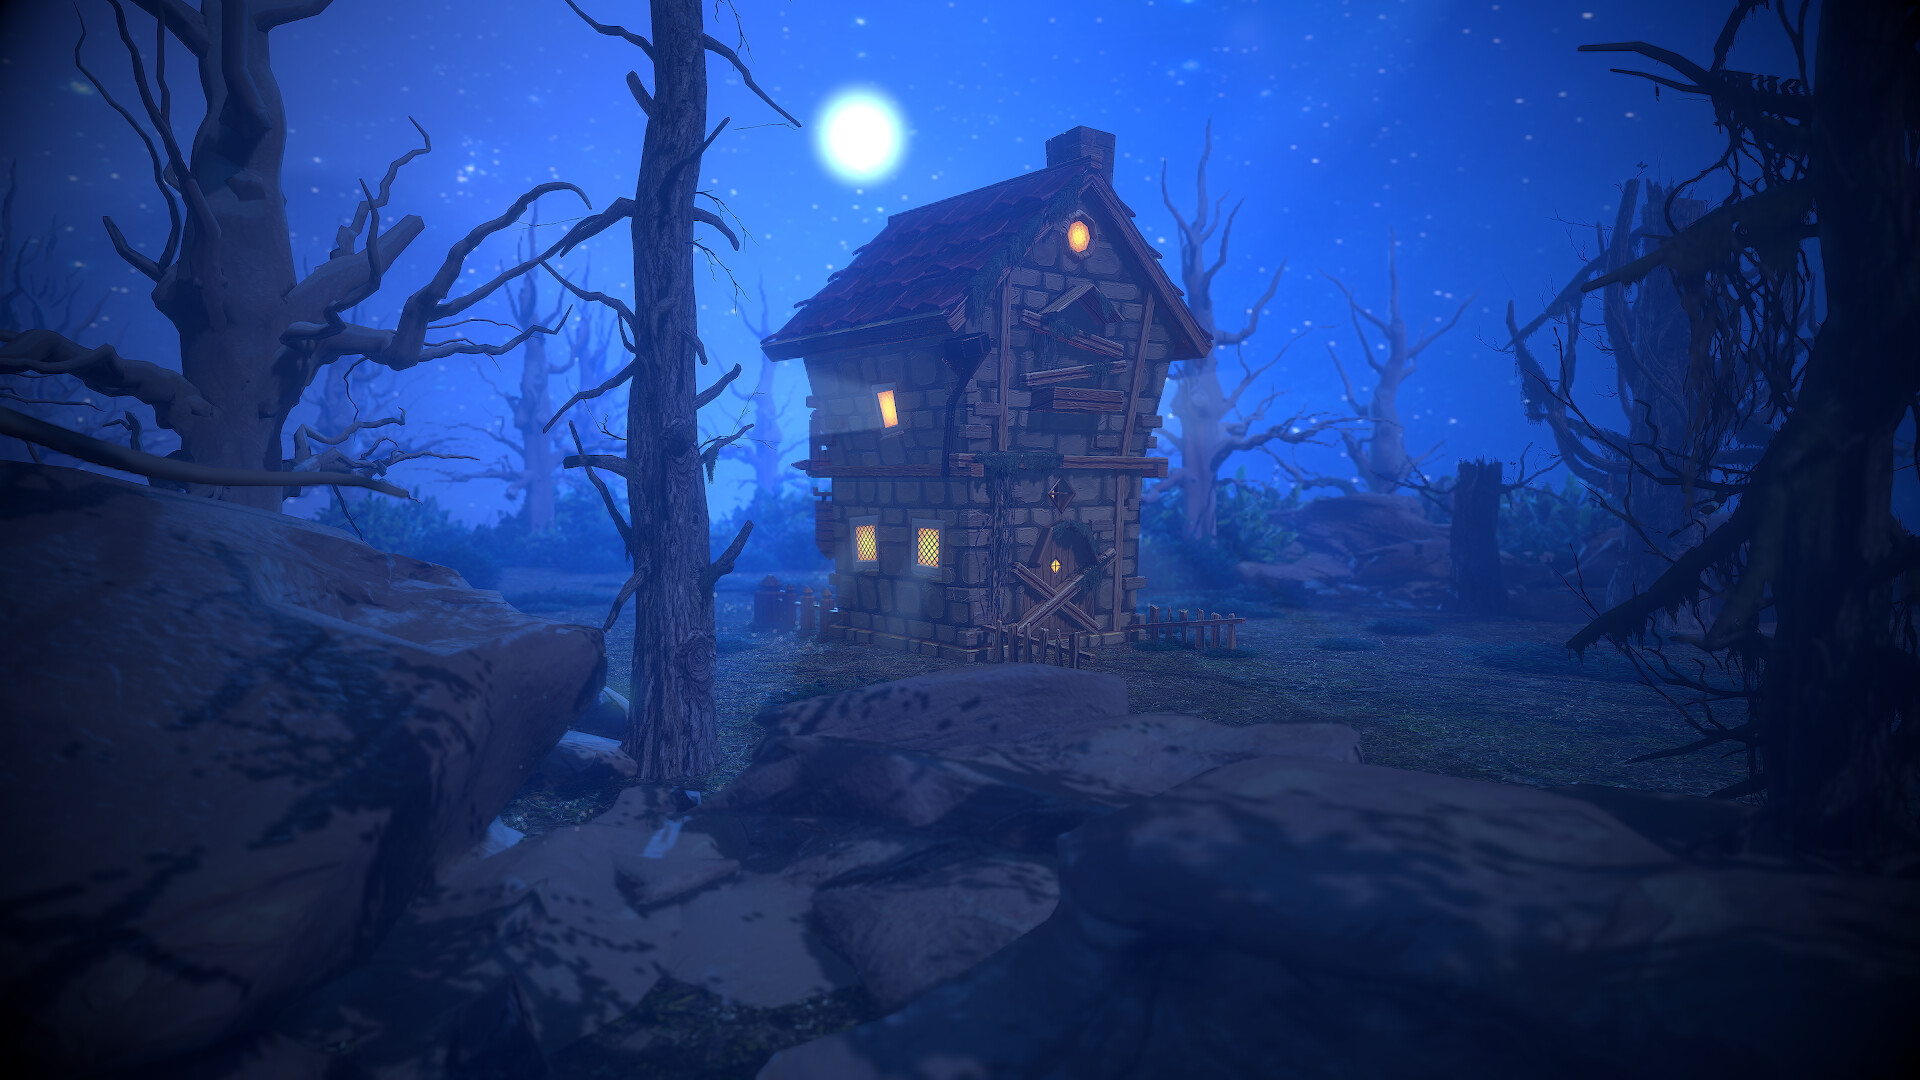 Low poly house for tale devils horse Started setting up for renderinglow polytris 6194Faces3121verts3774Low Poly  scorpion3dcom  Tomas Laureckis